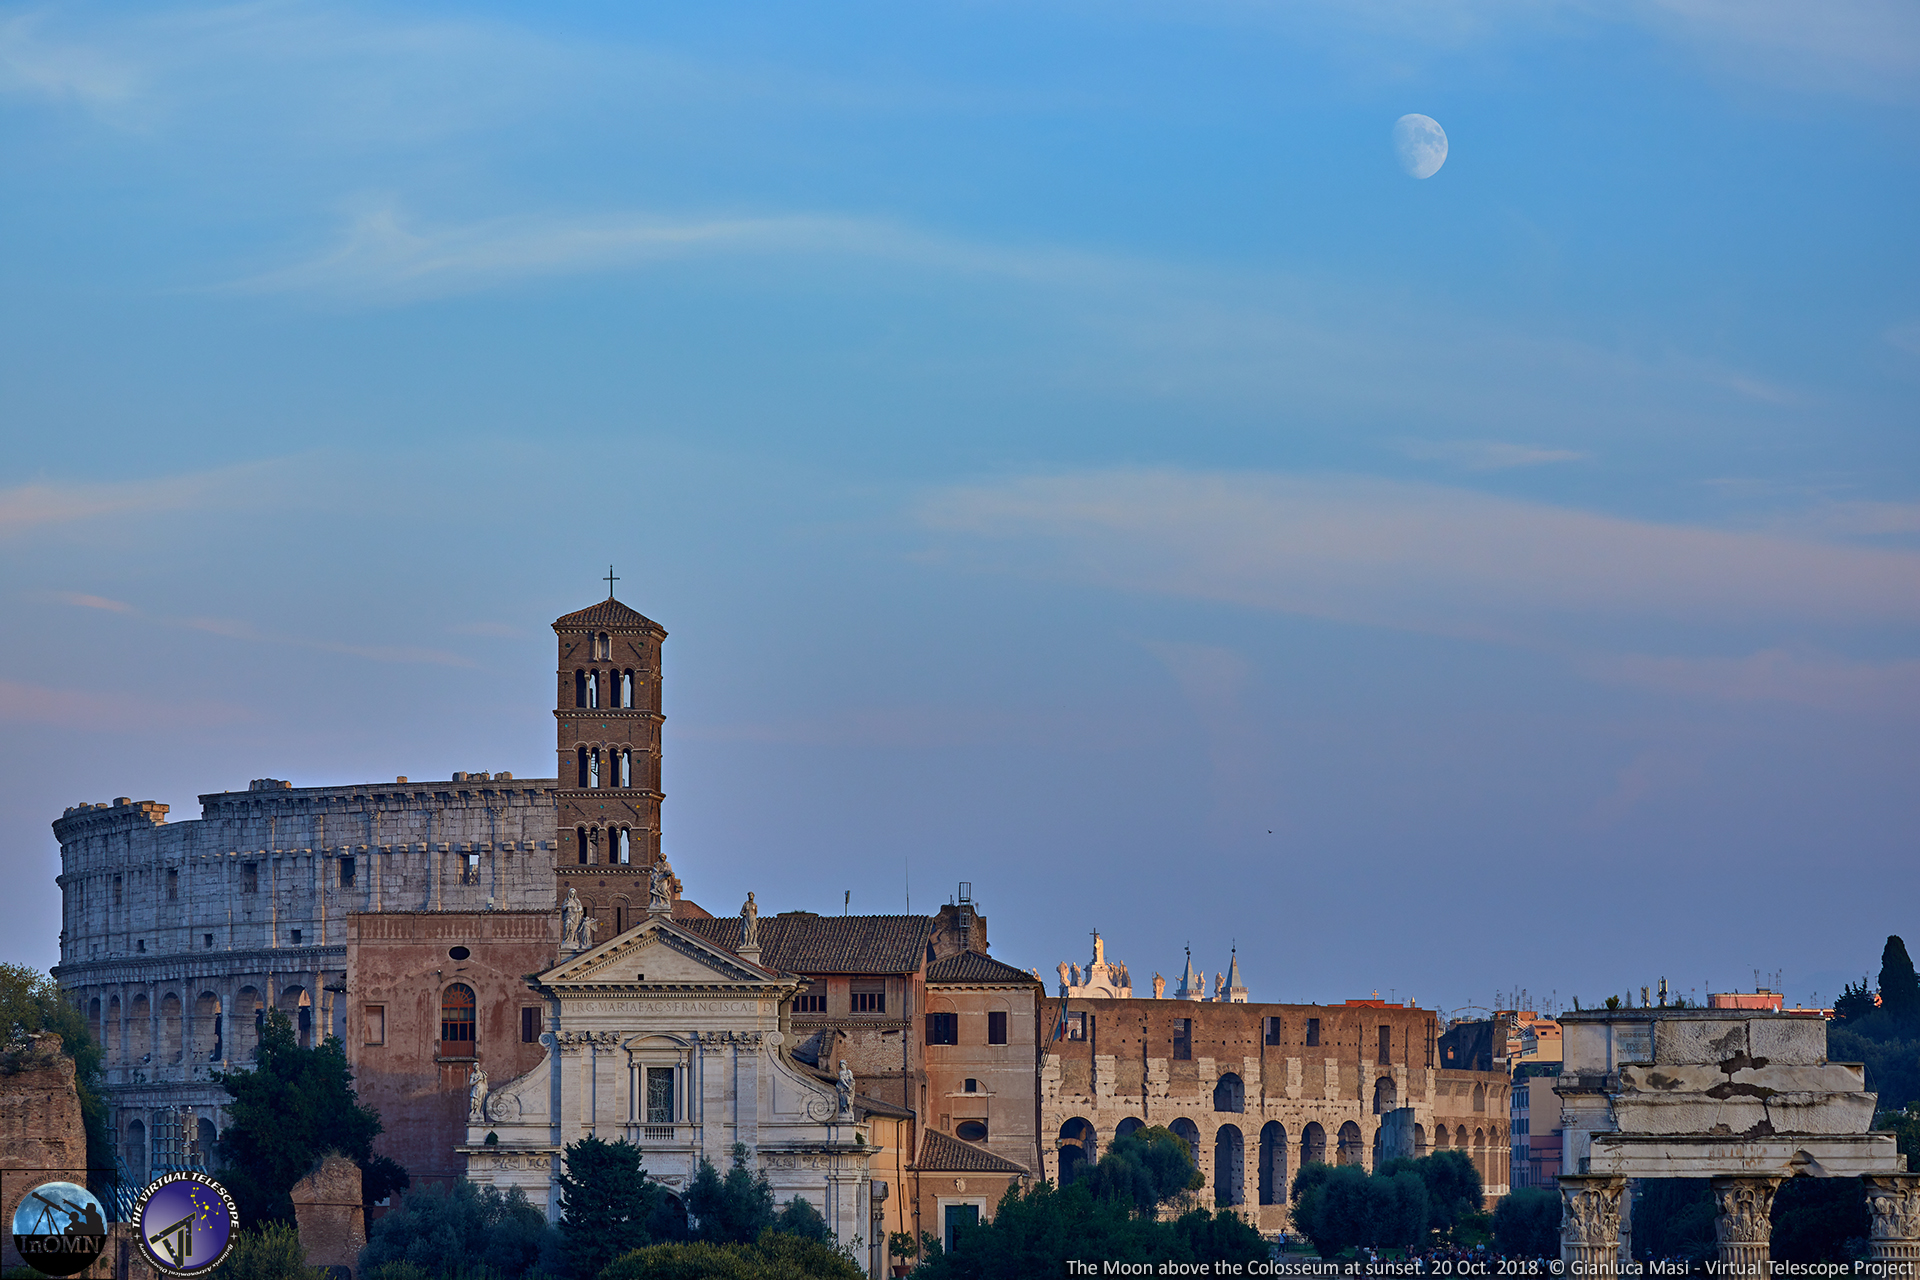 A pale Moon hangs above the Colosseum at sunset - 20 Oct. 2018